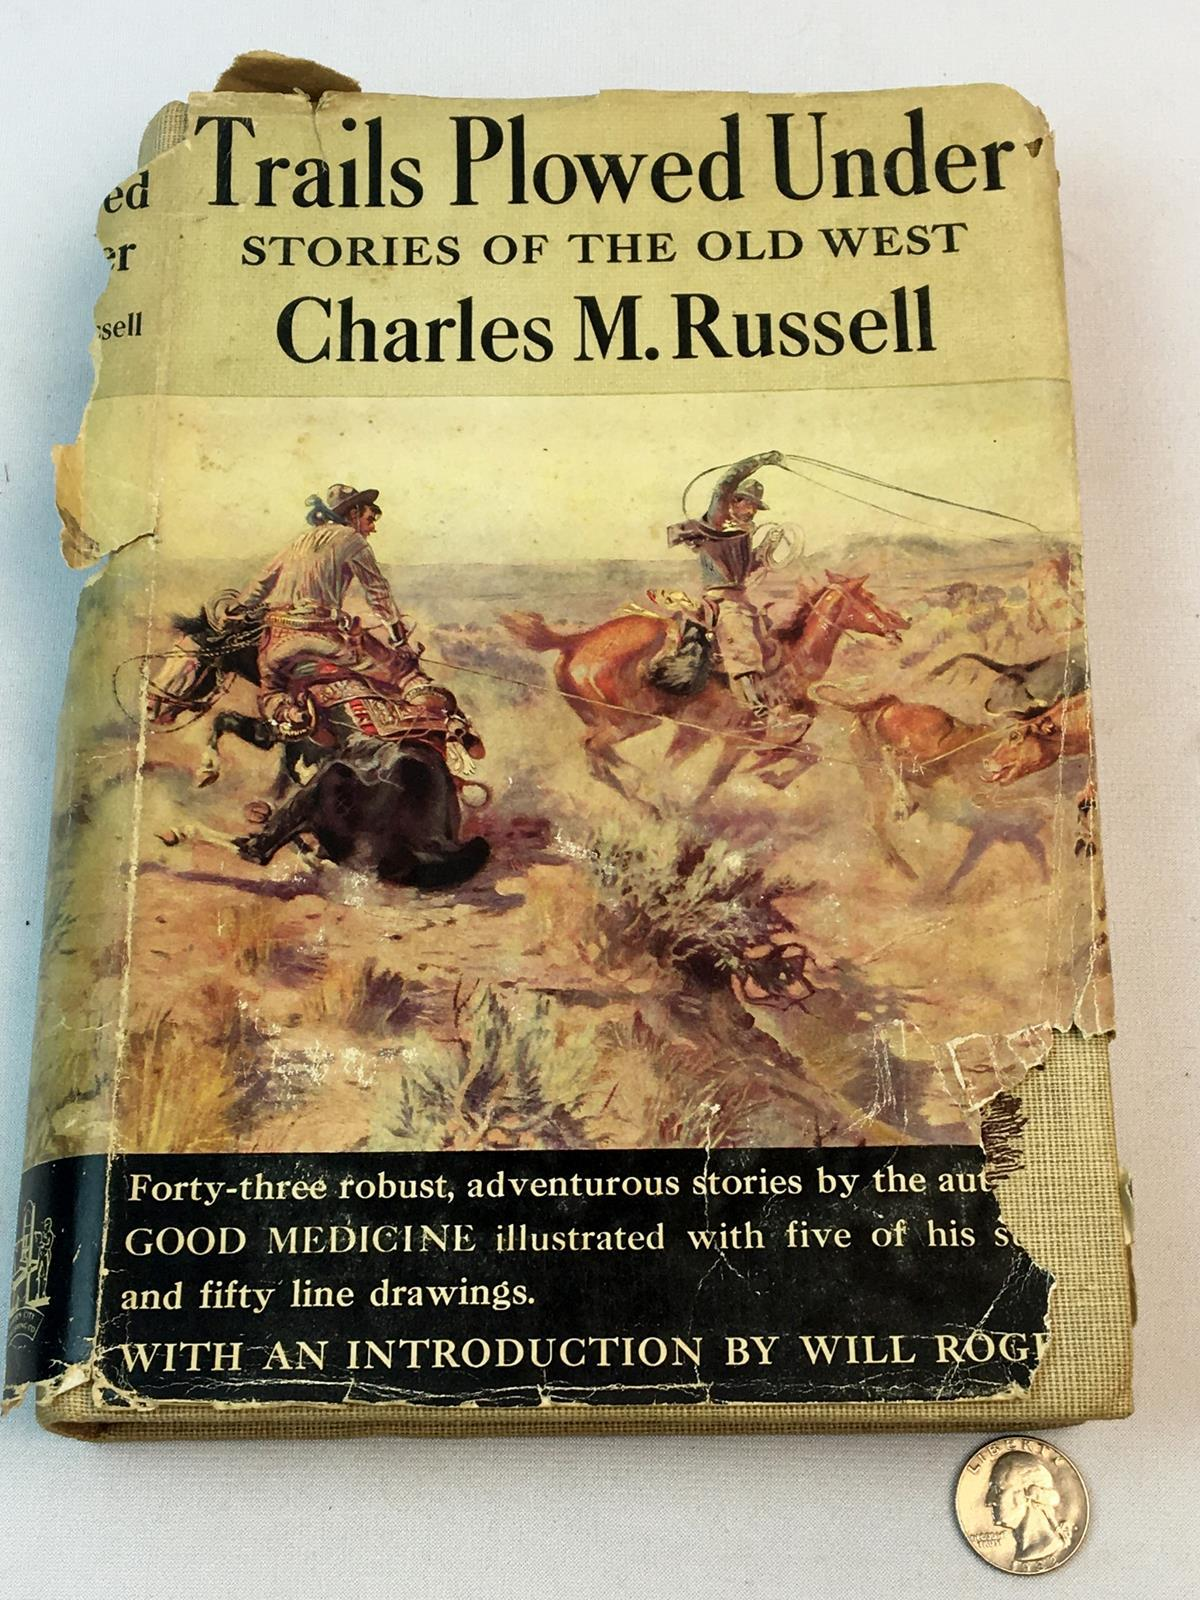 1941 Trails Plowed Under Stories Of The Old West By Charles M. Russell W/ Dust Jacket